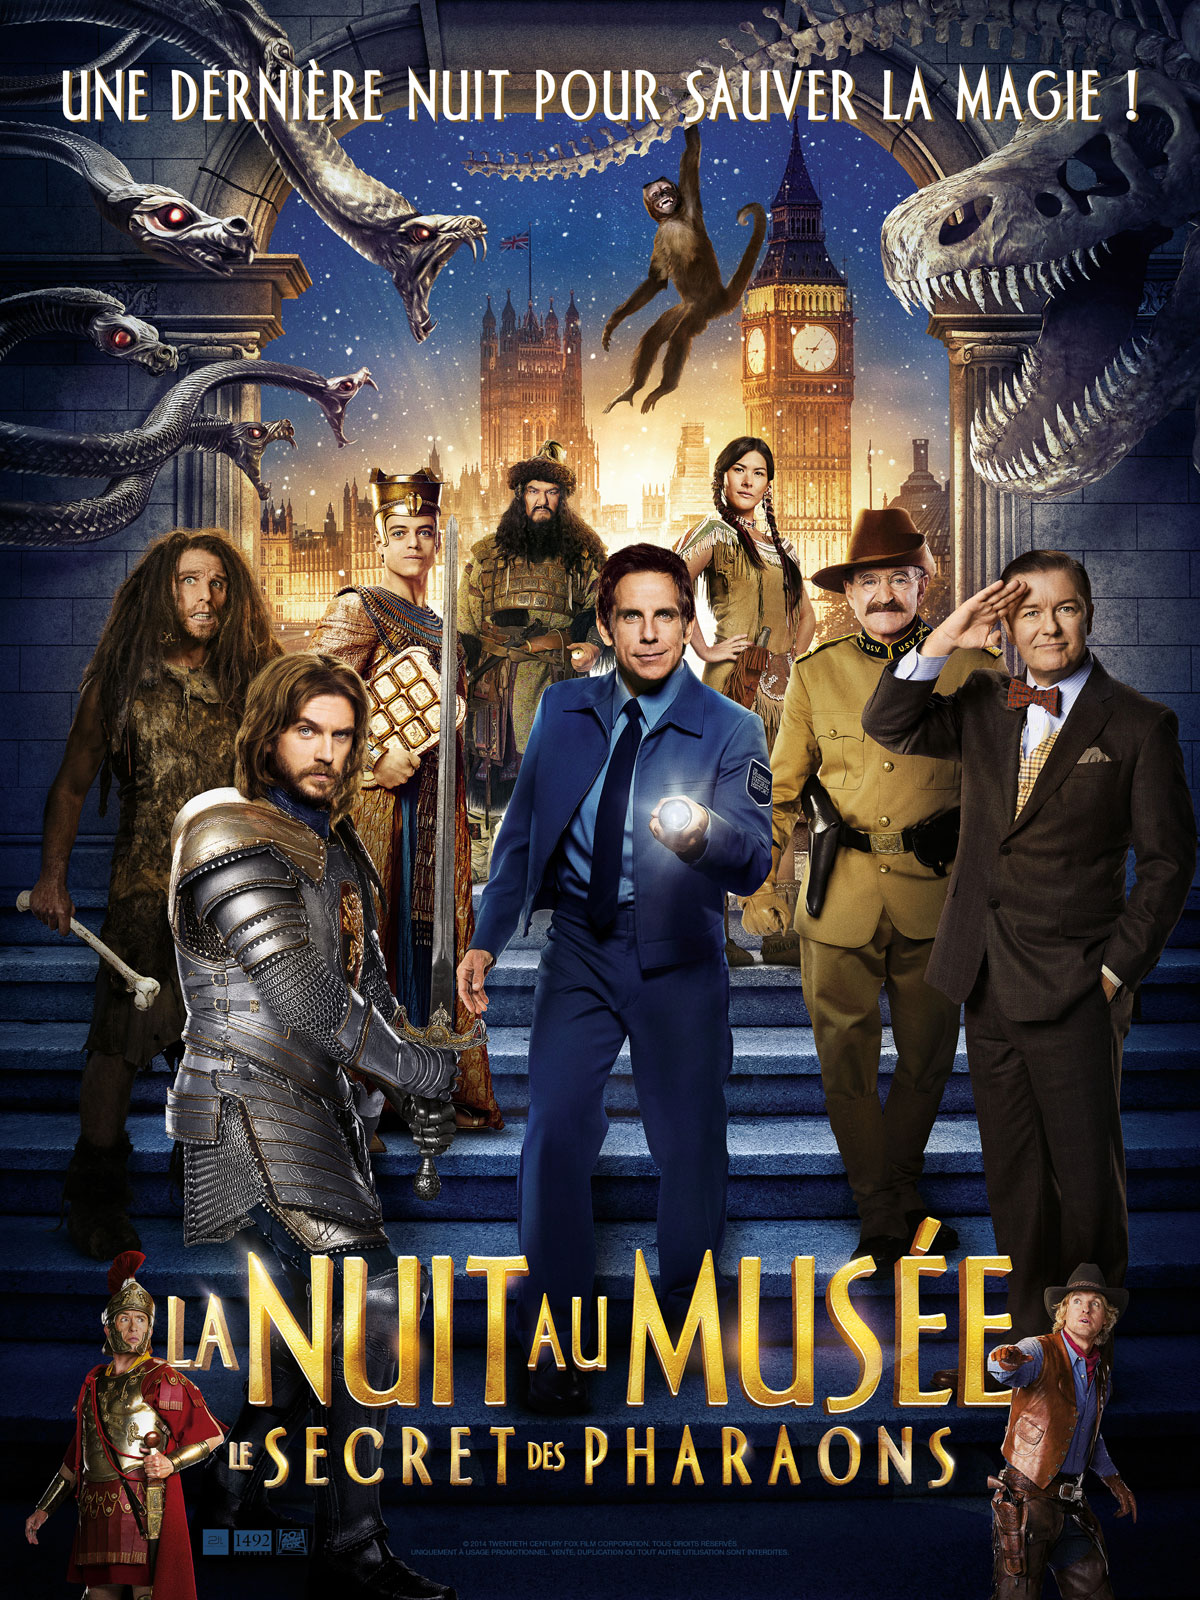 Télécharger La Nuit au musée : Le Secret des Pharaons DVDRIP TUREFRENCH Uploaded